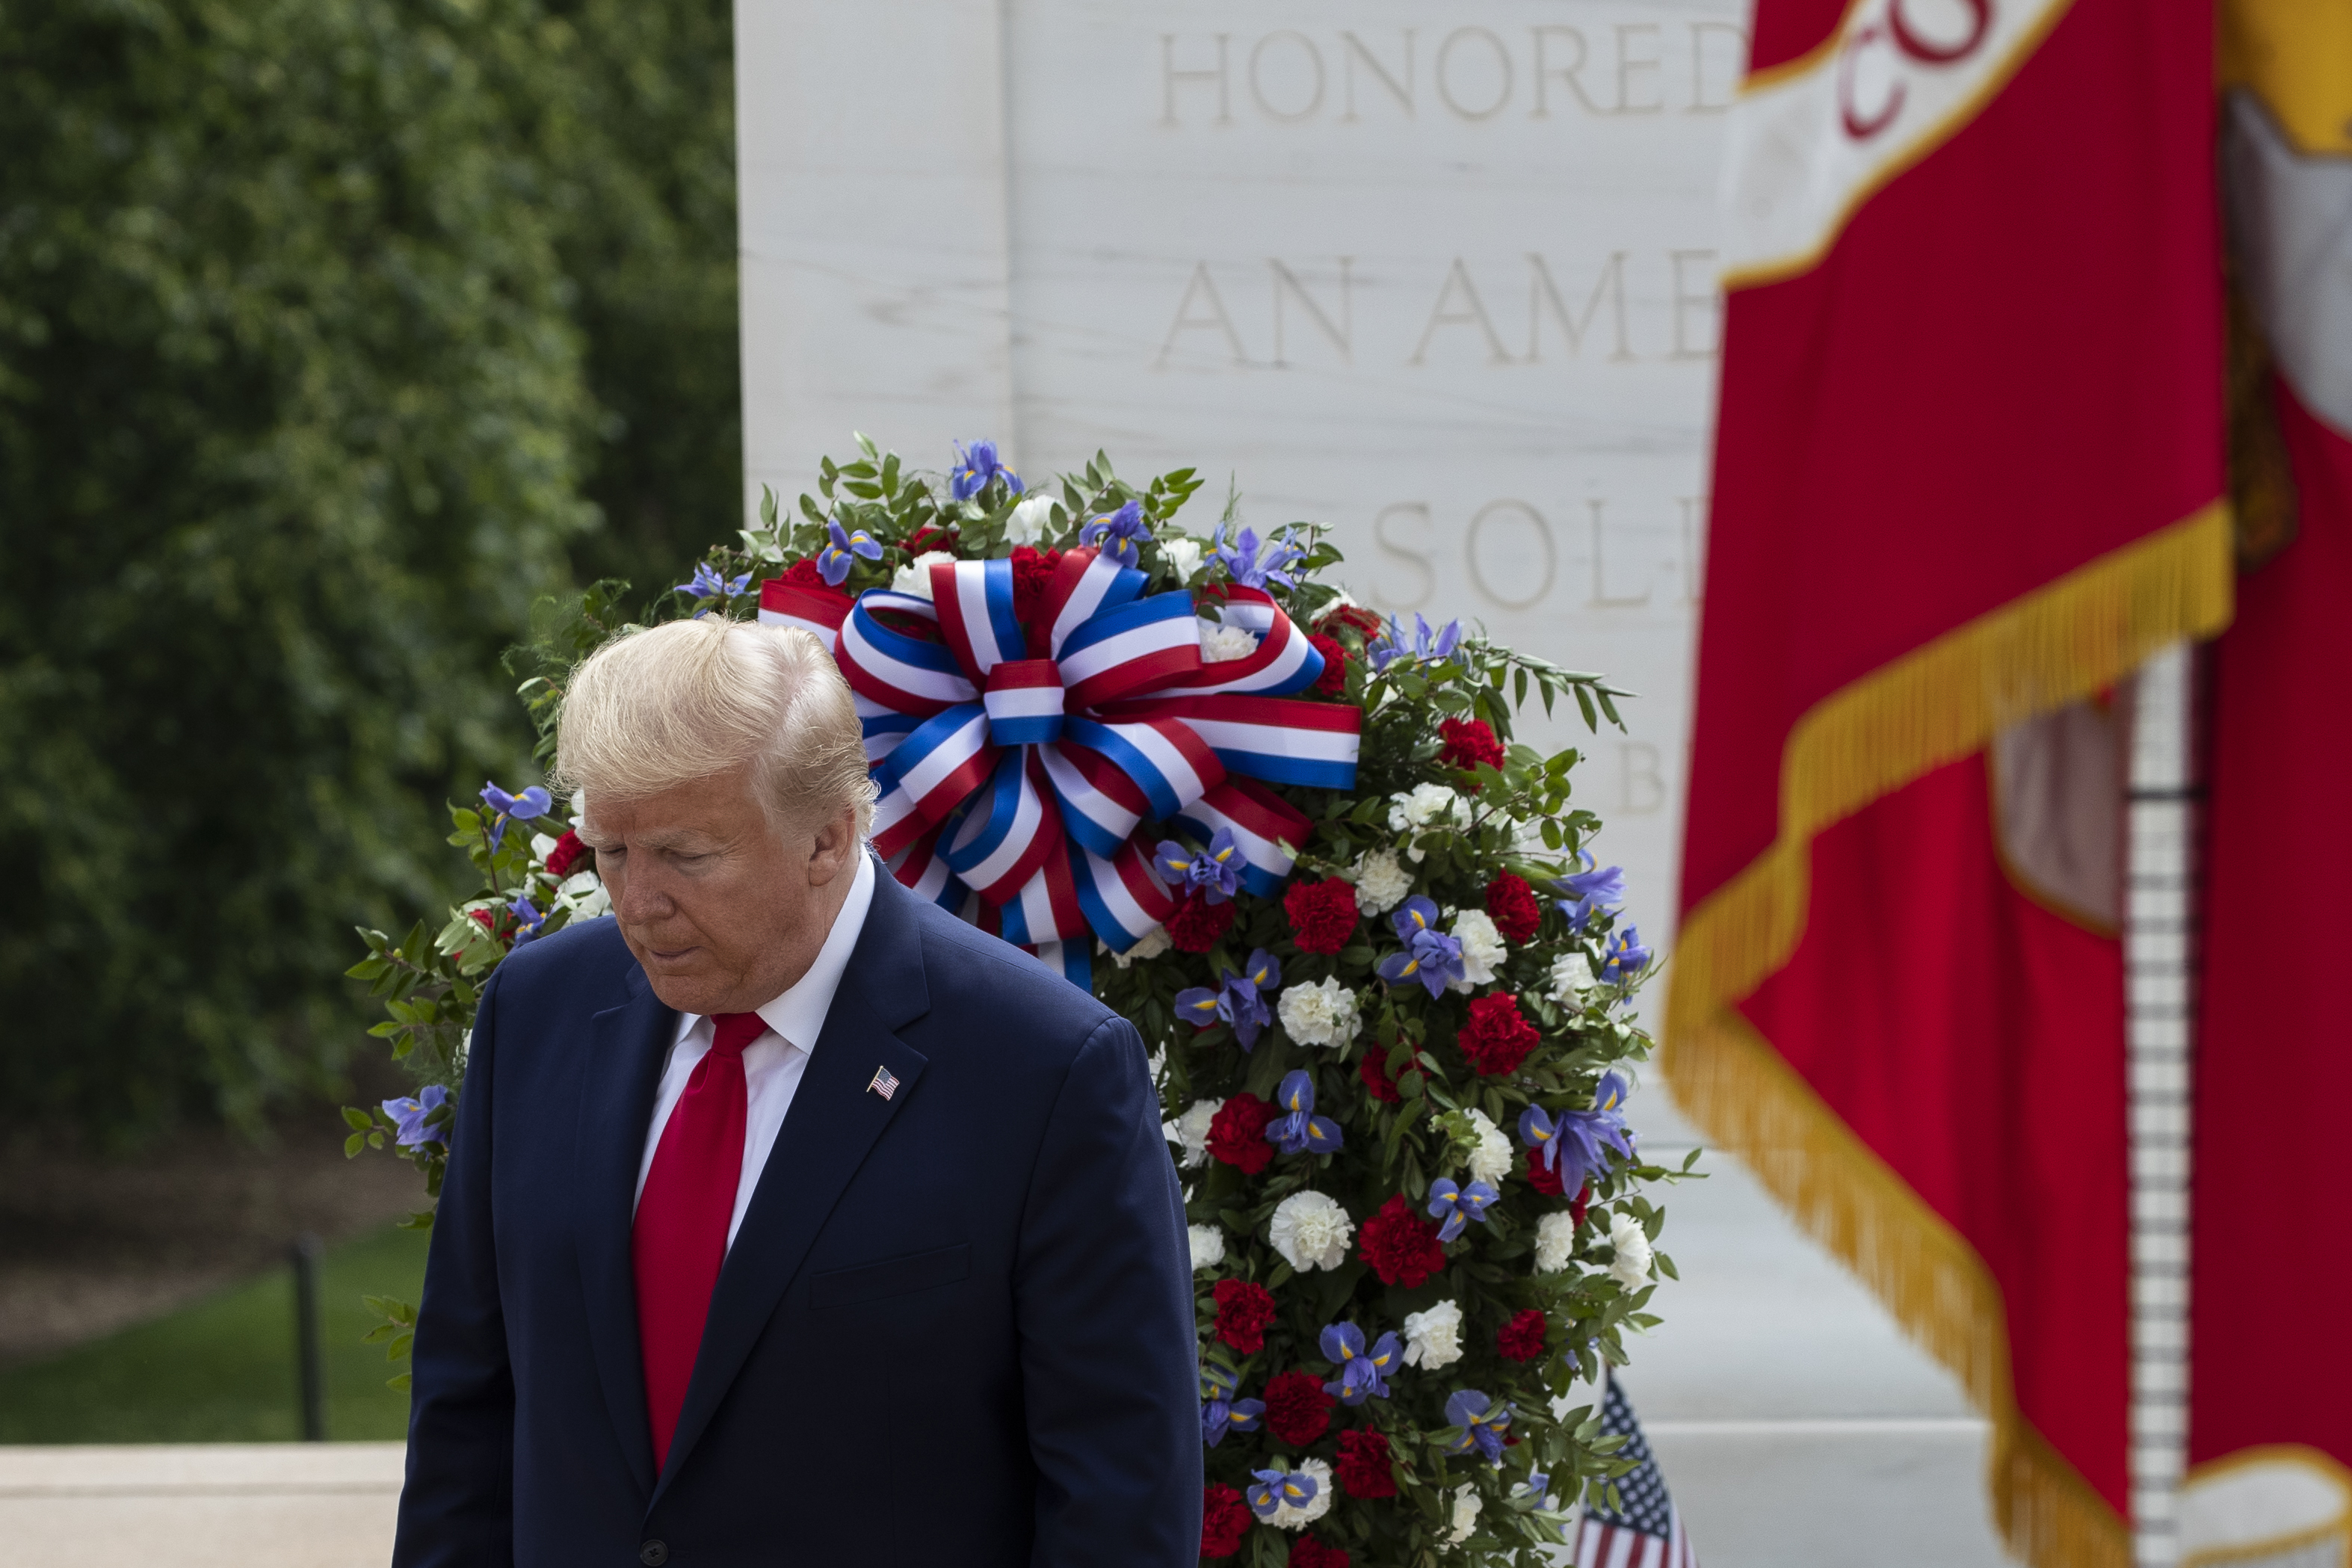 President Donald Trump turns after placing a wreath at the Tomb of the Unknown Soldier in Arlington National Cemetery, in honor of Memorial Day, May 25, 2020, in Arlington, Va.